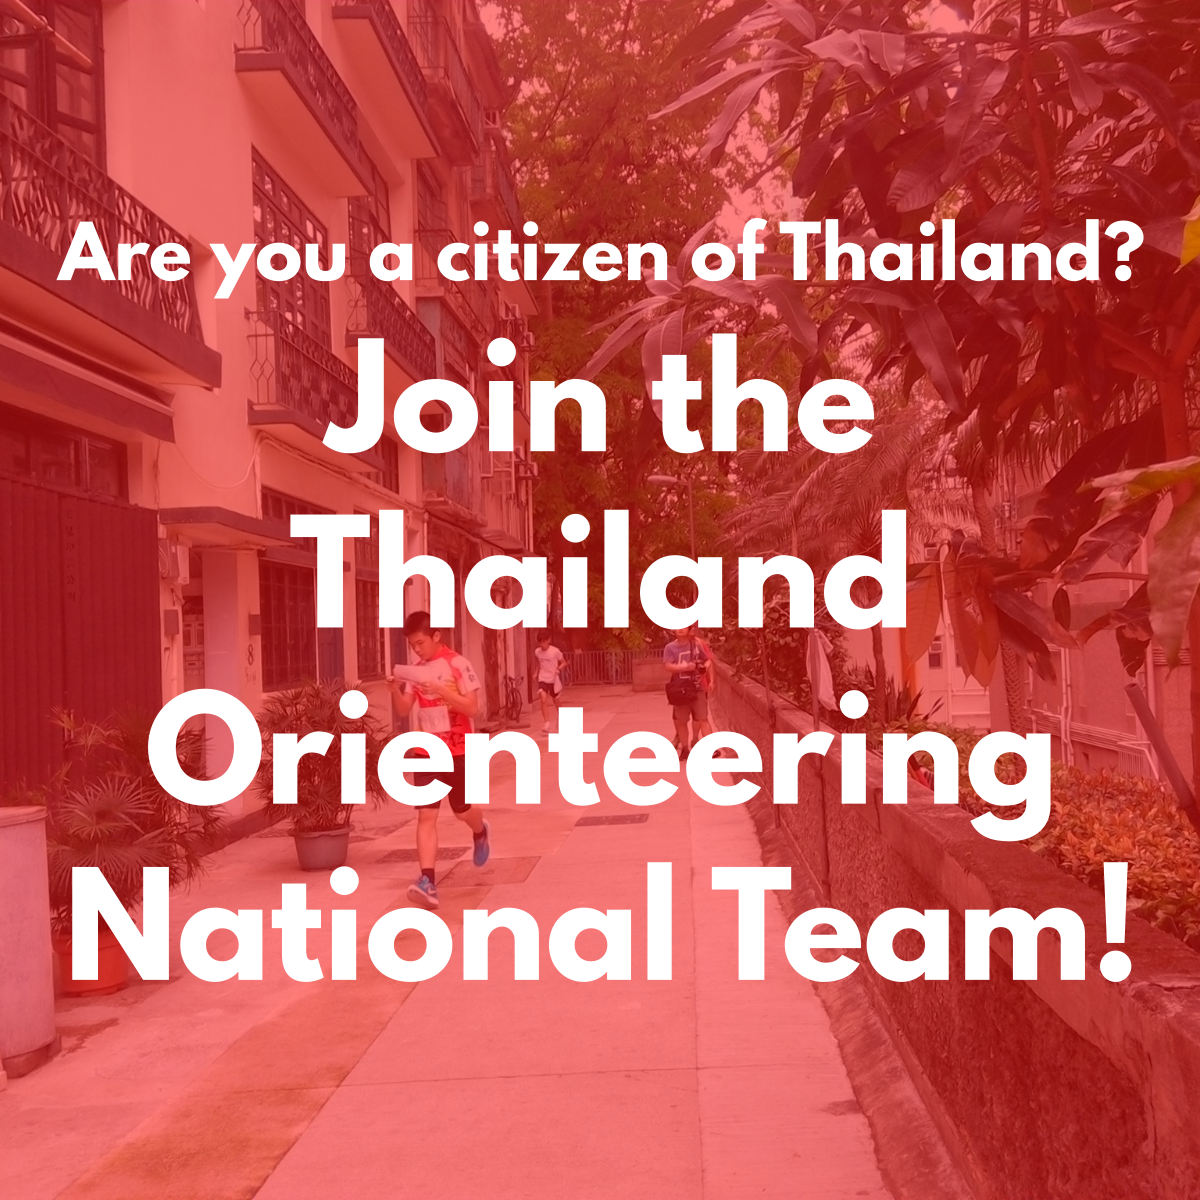 Are you a citizen of Thailand? Join the Thailand Orienteering National Team!